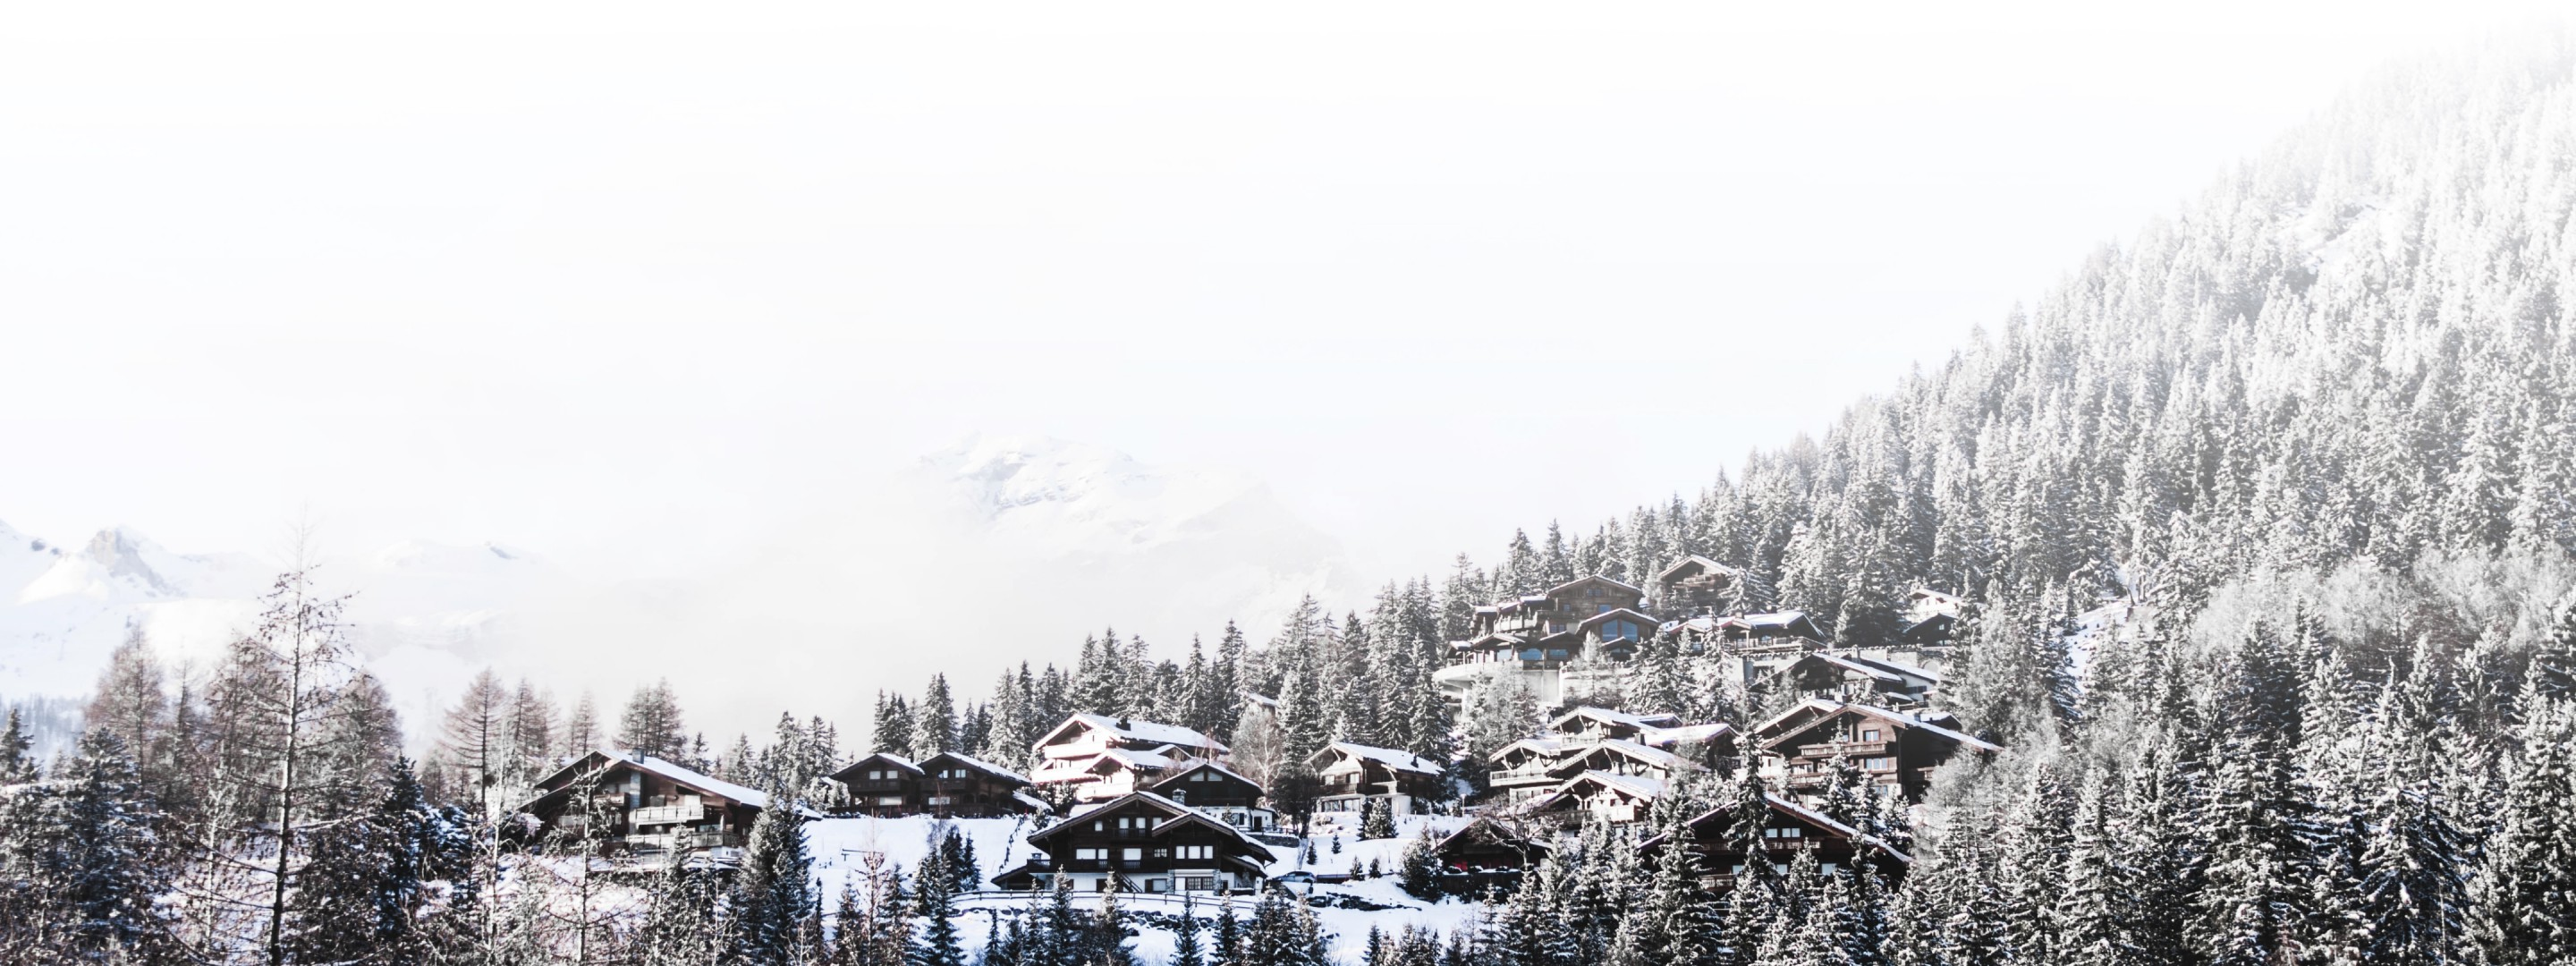 Swiss chalets in the snowy alps.